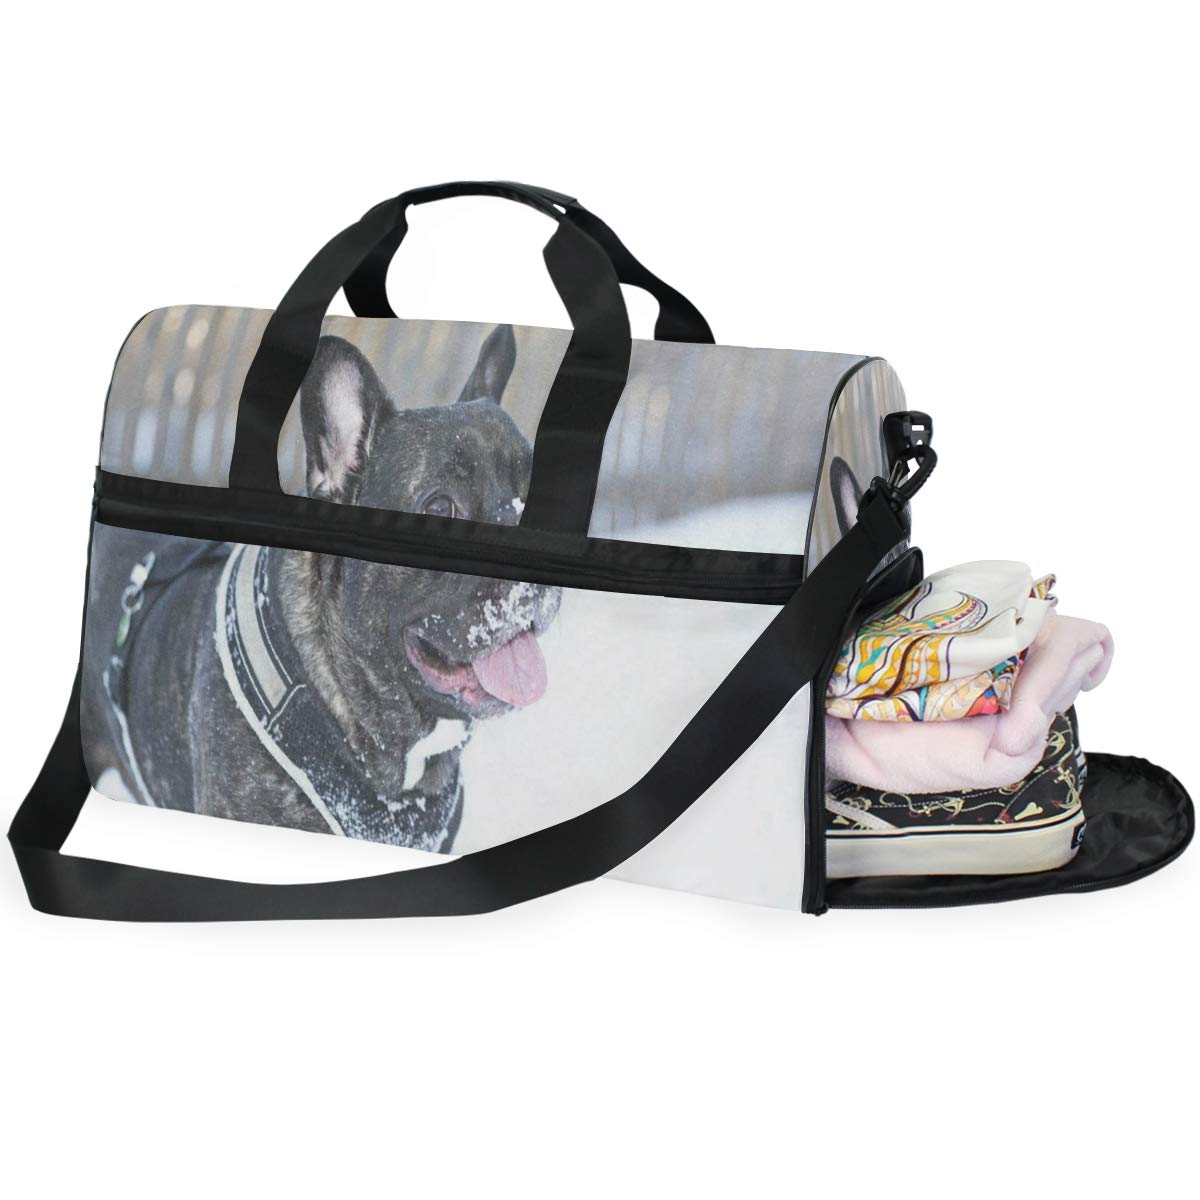 Travel Tote Luggage Weekender Duffle Bag French Buldog Large Canvas shoulder bag with Shoe Compartment